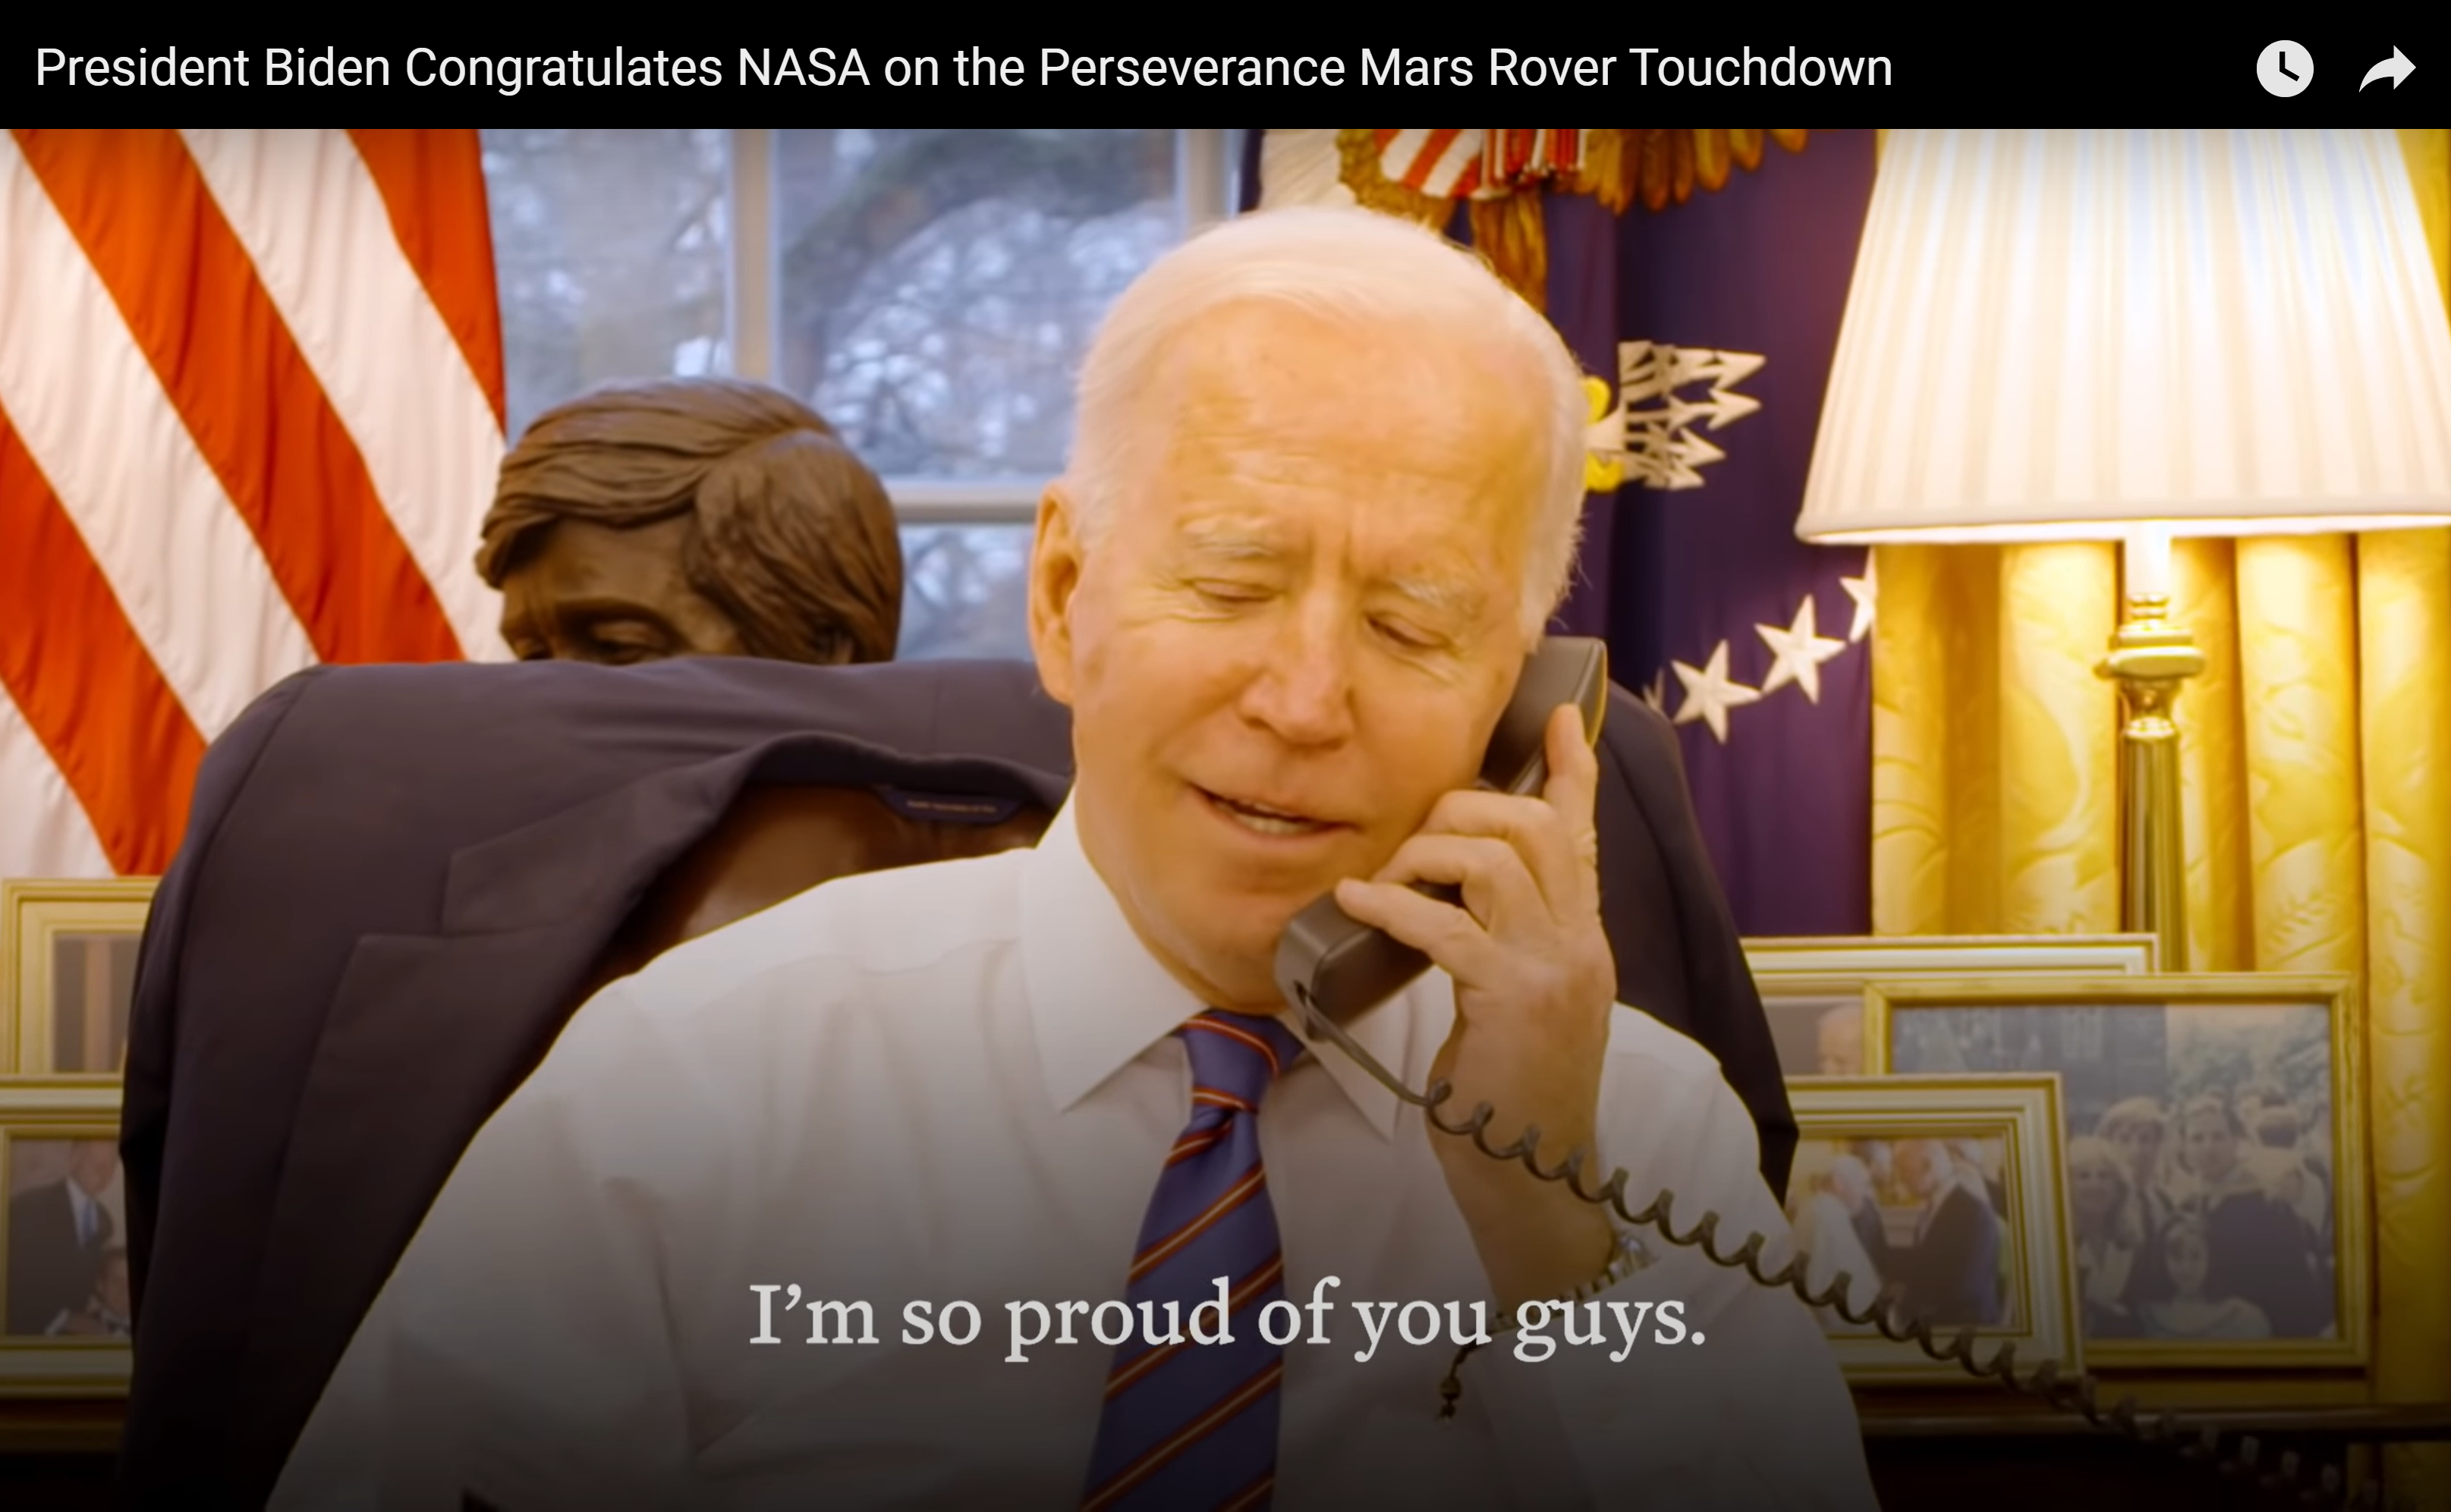 President Biden Calls to Congratulate NASA on Perseverance Mars Rover Touchdown: Watch Video